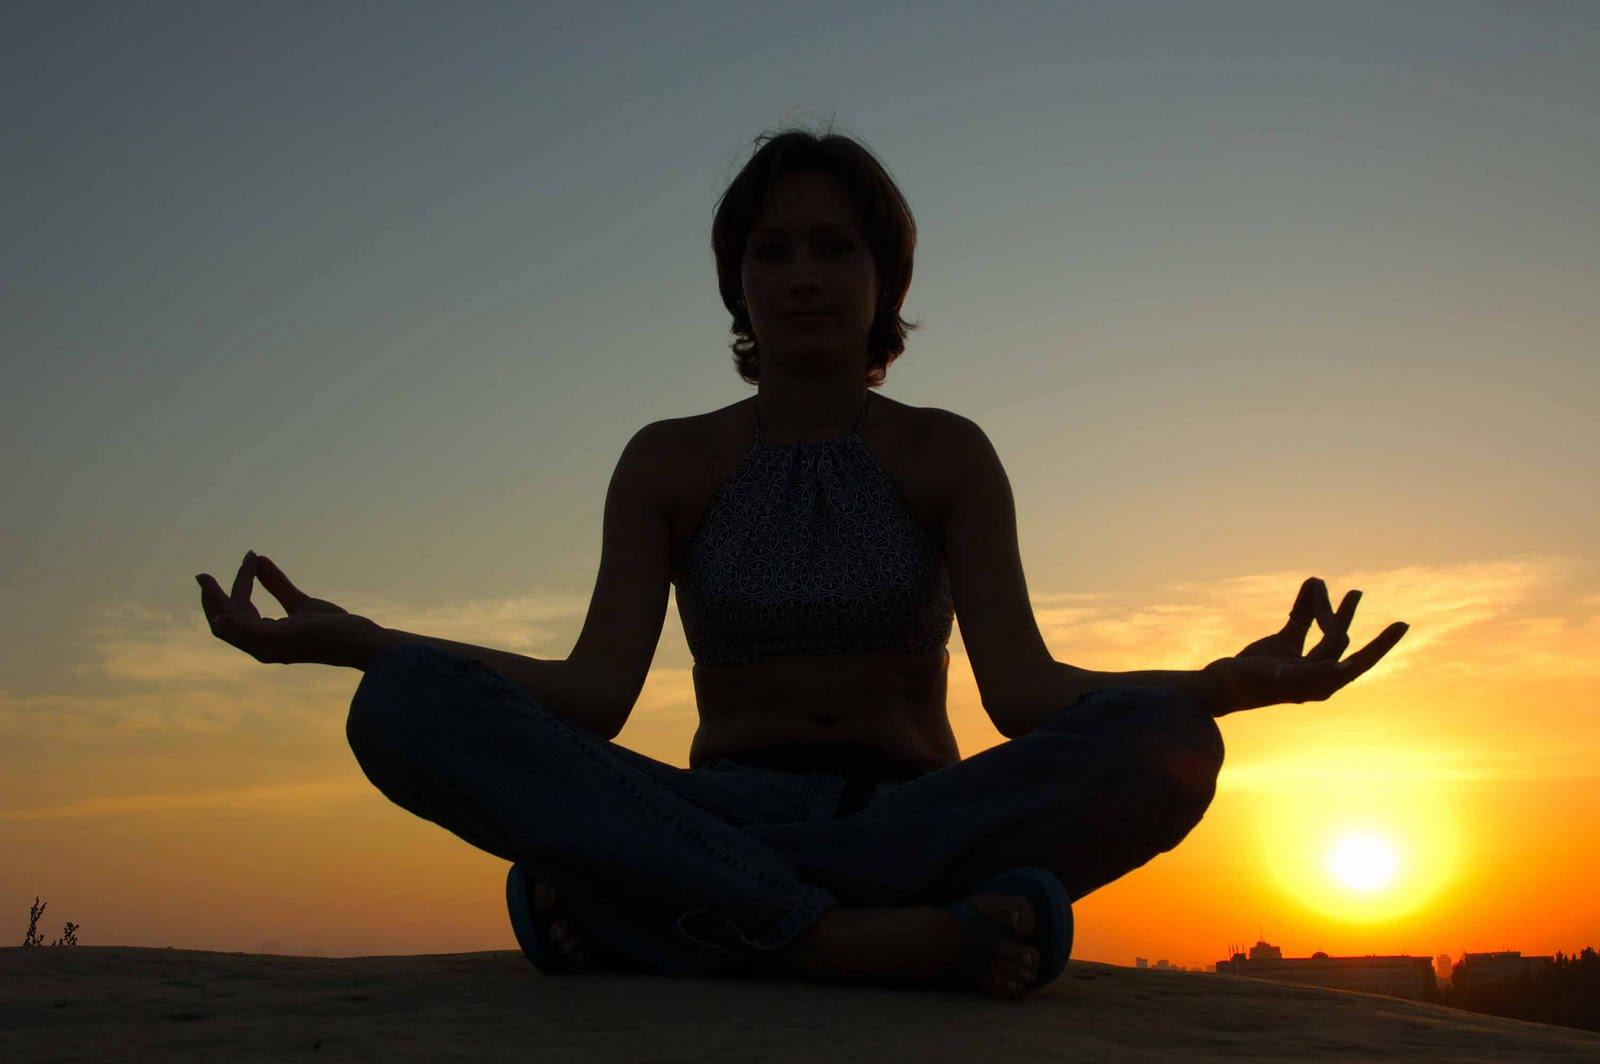 Relief for late-life depression and anxiety with meditation